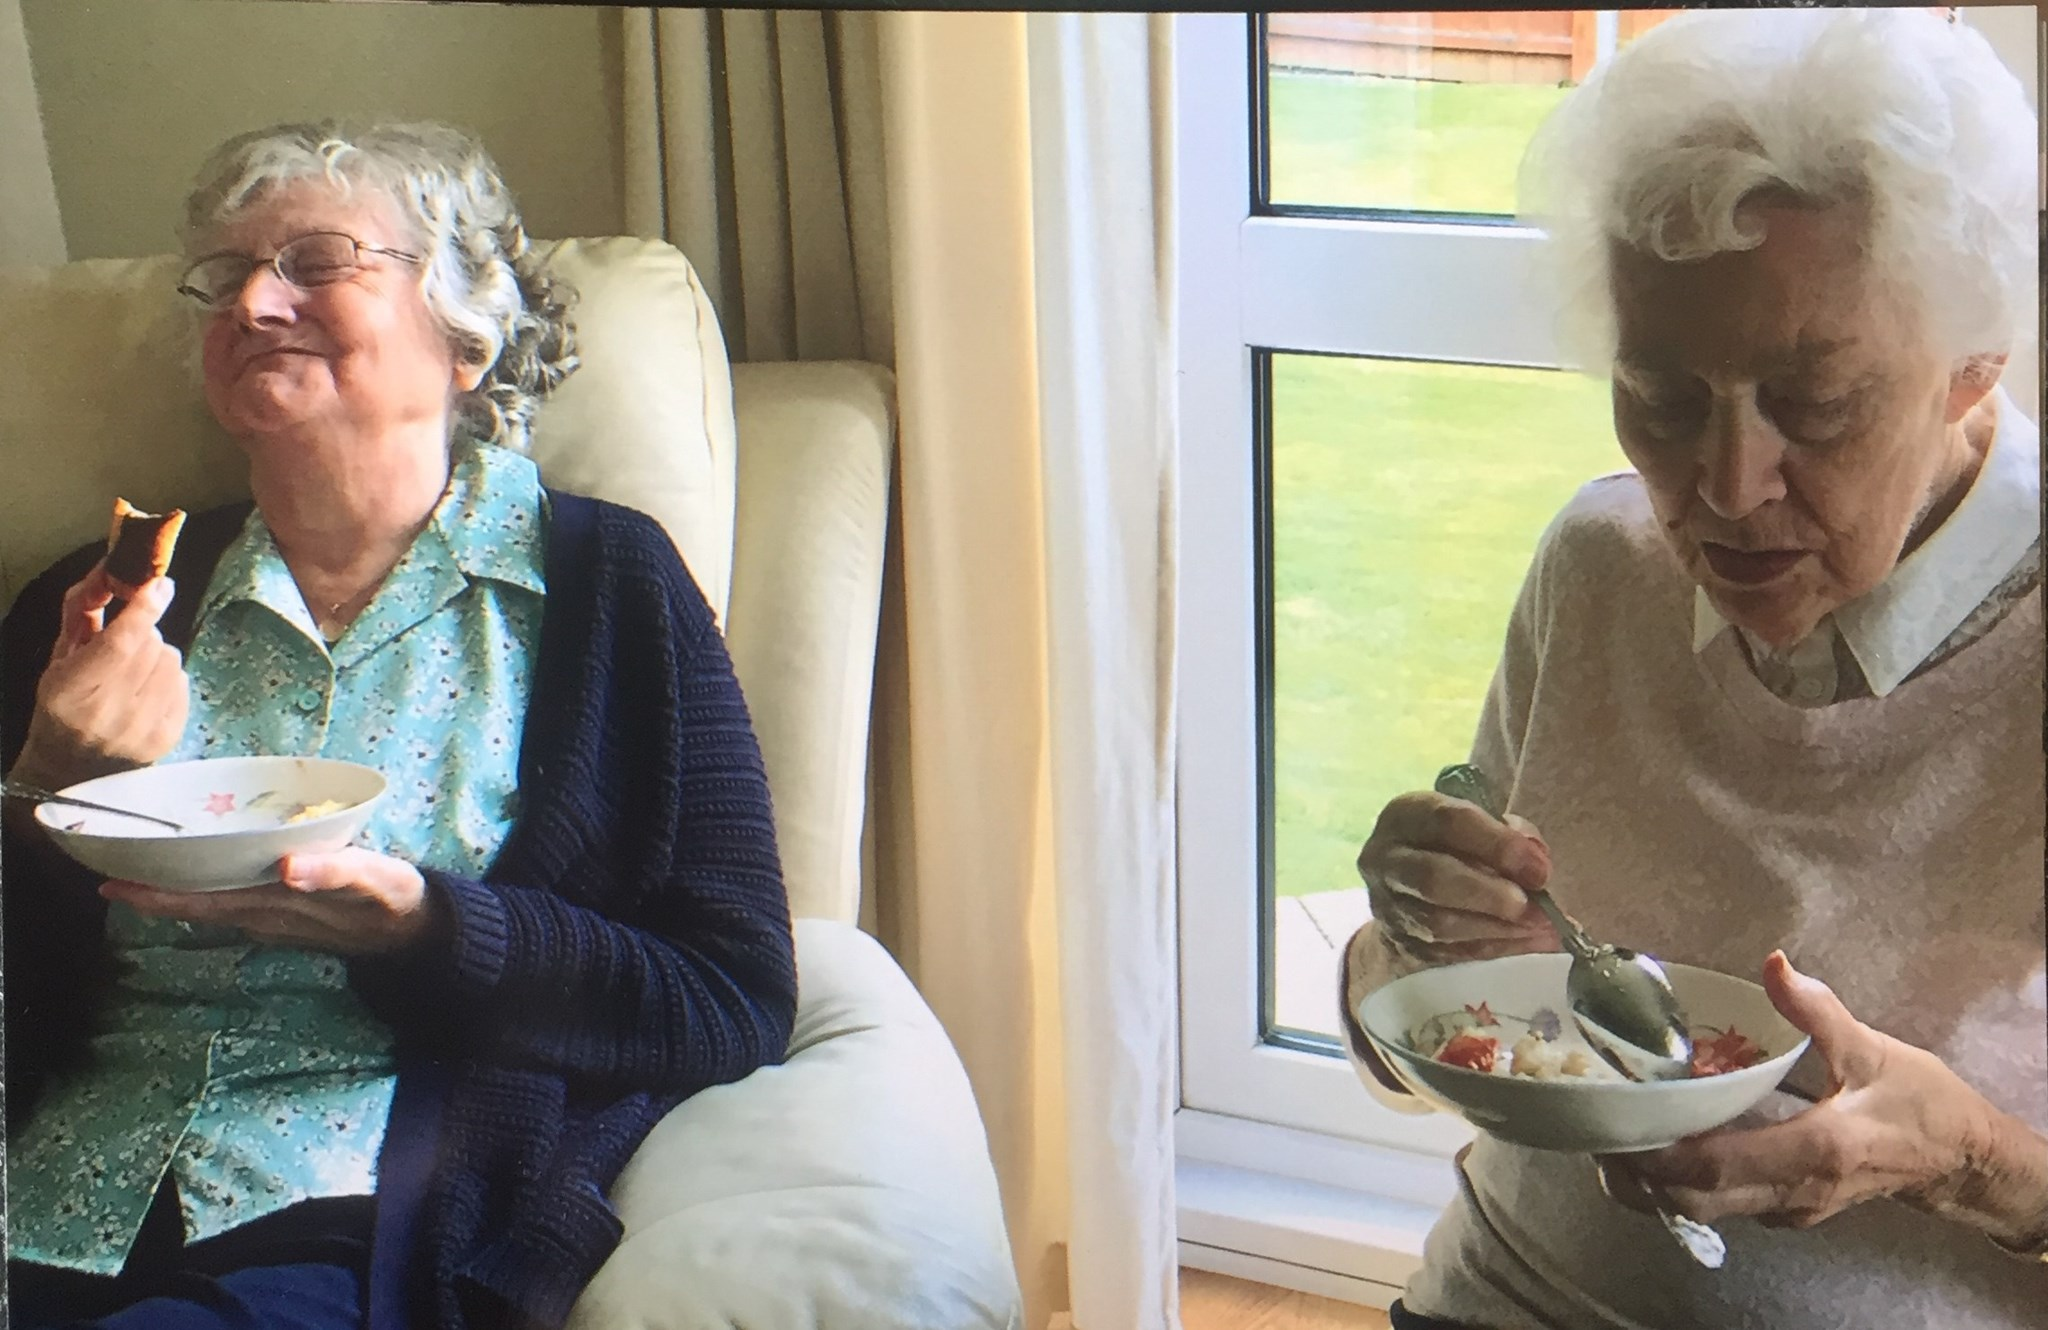 Mum and May enjoying something delicious and hilarious